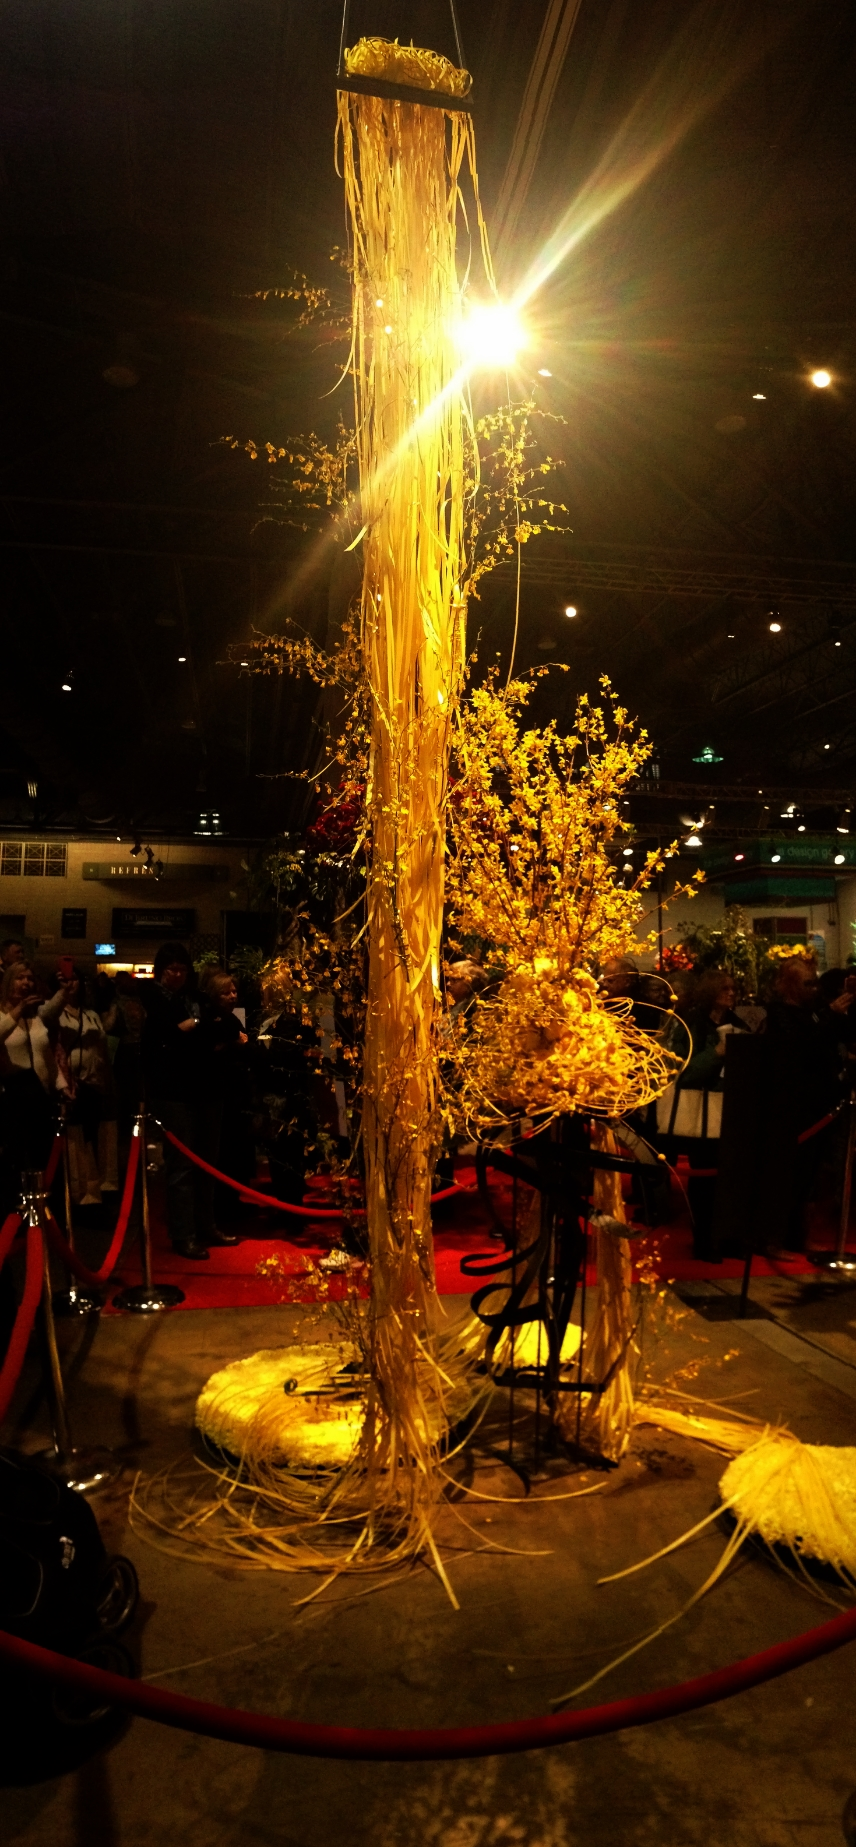 The display for Rapunzel at the Philadelphia Flower Show.